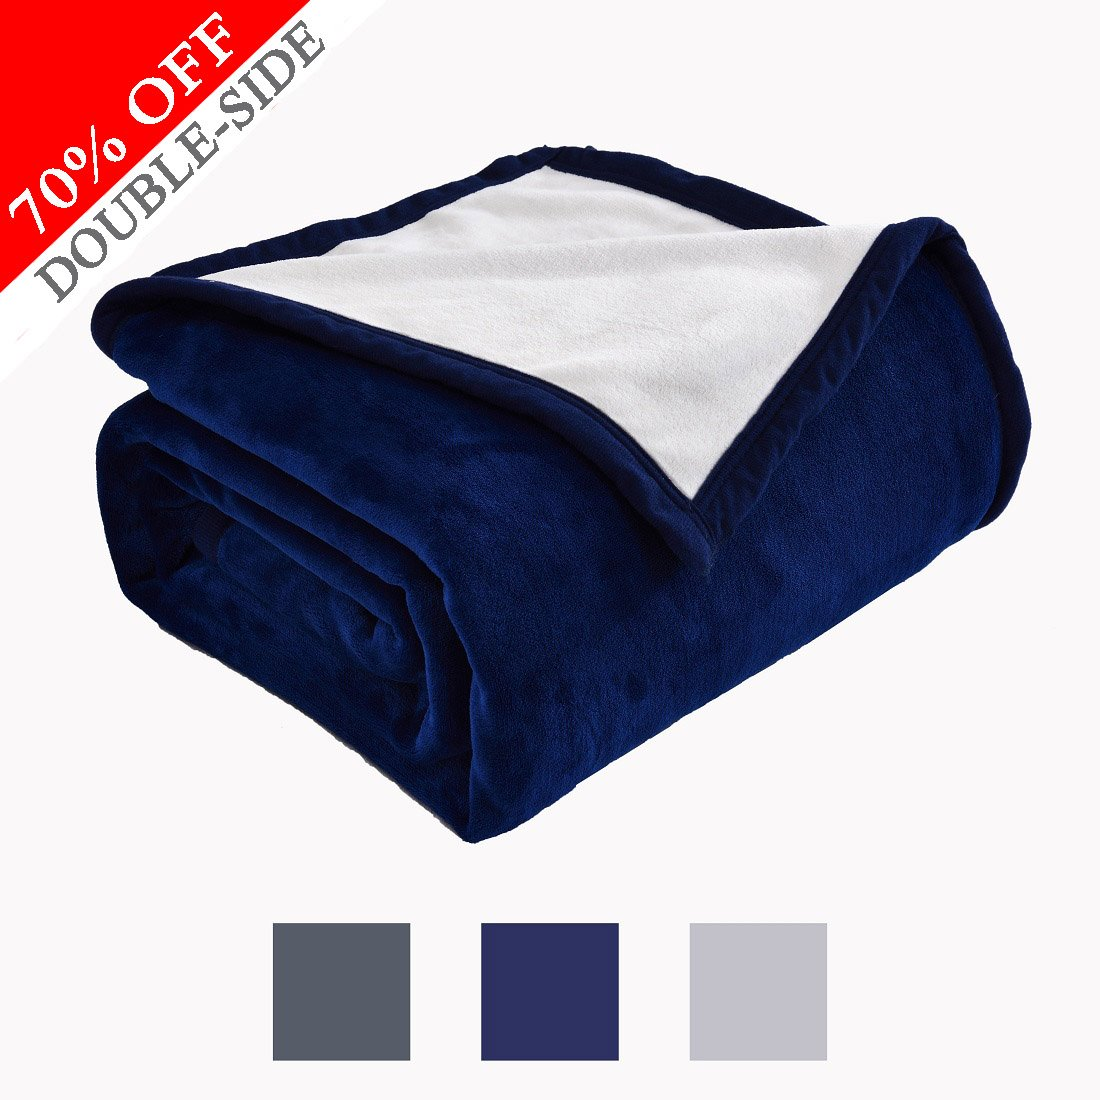 Fleece Blanket 460 GSM Anti-static Double-sides Reversible Super Soft Warm Fuzzy Bed Blanket by Dream Fly Life Queen,Dark Blue & Ivory